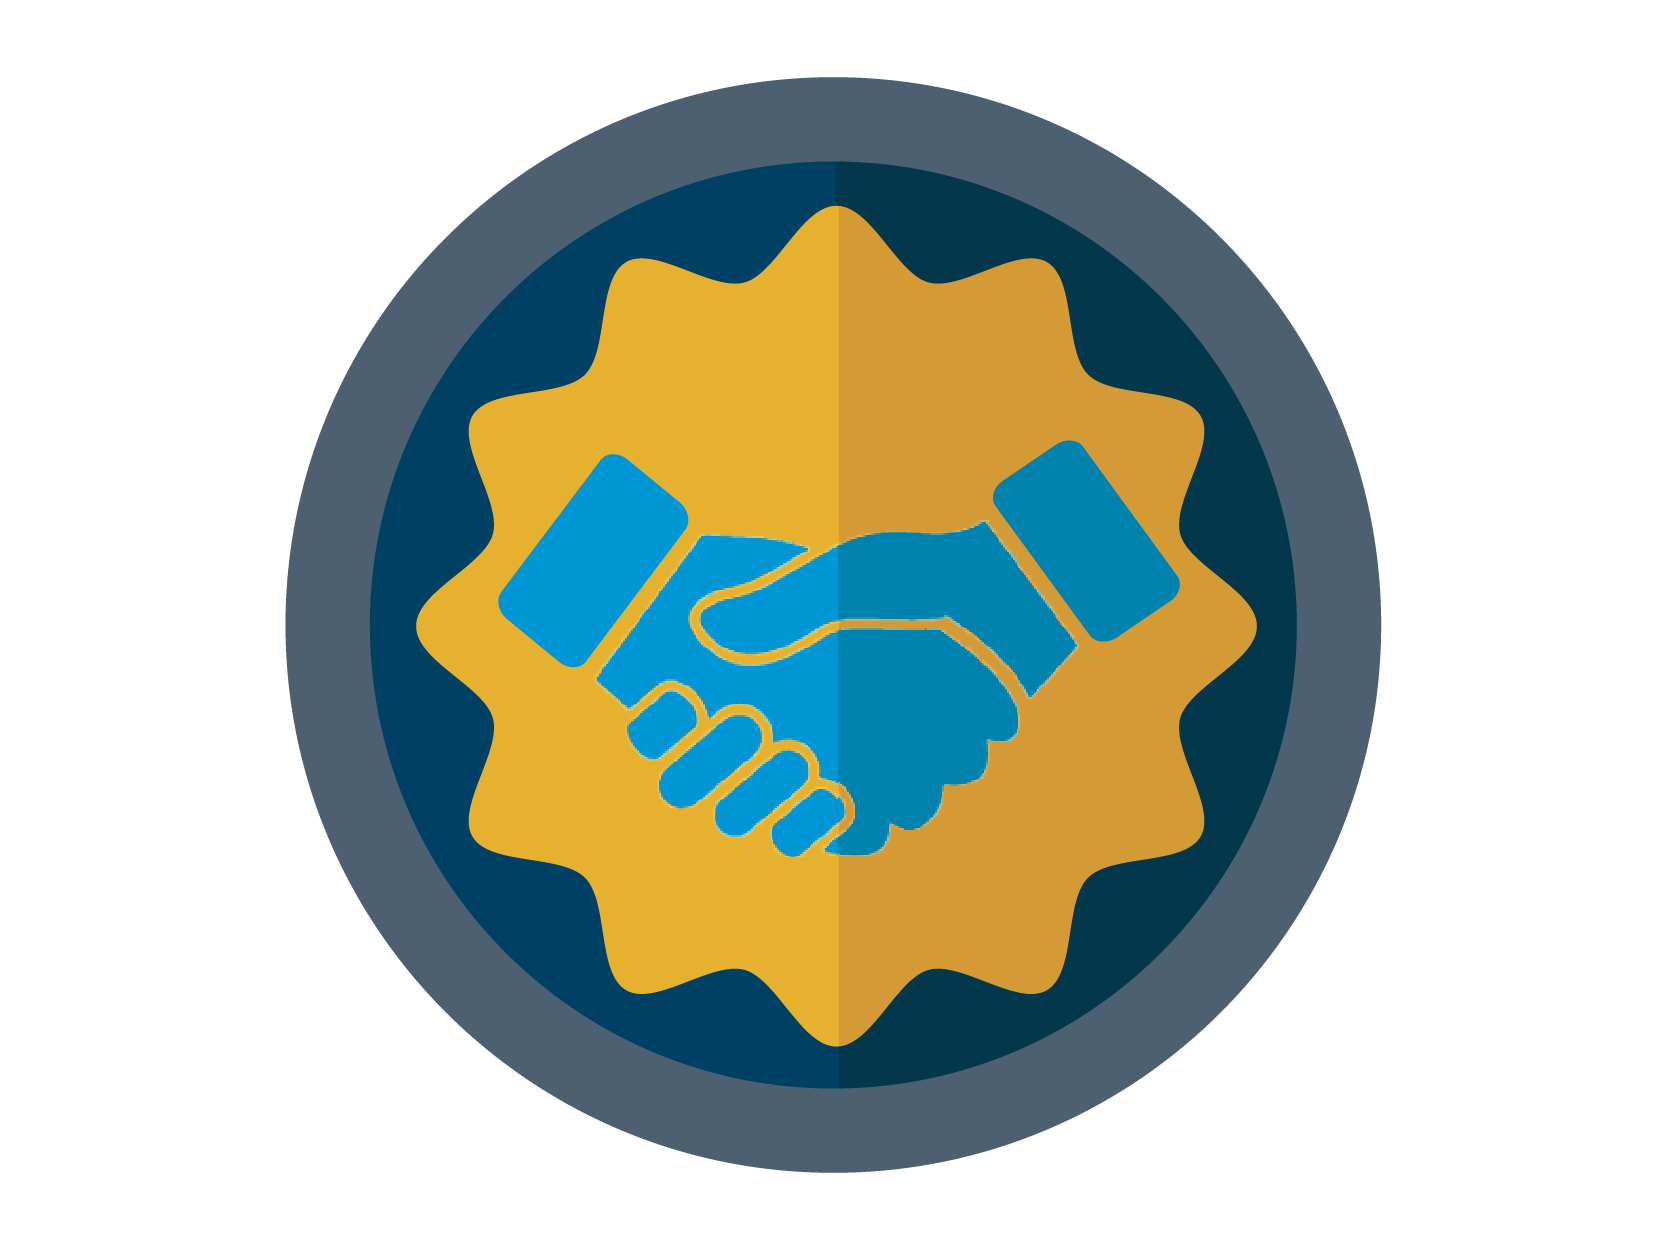 HRMD Excellence Initiative Icon: A badge with a handshake